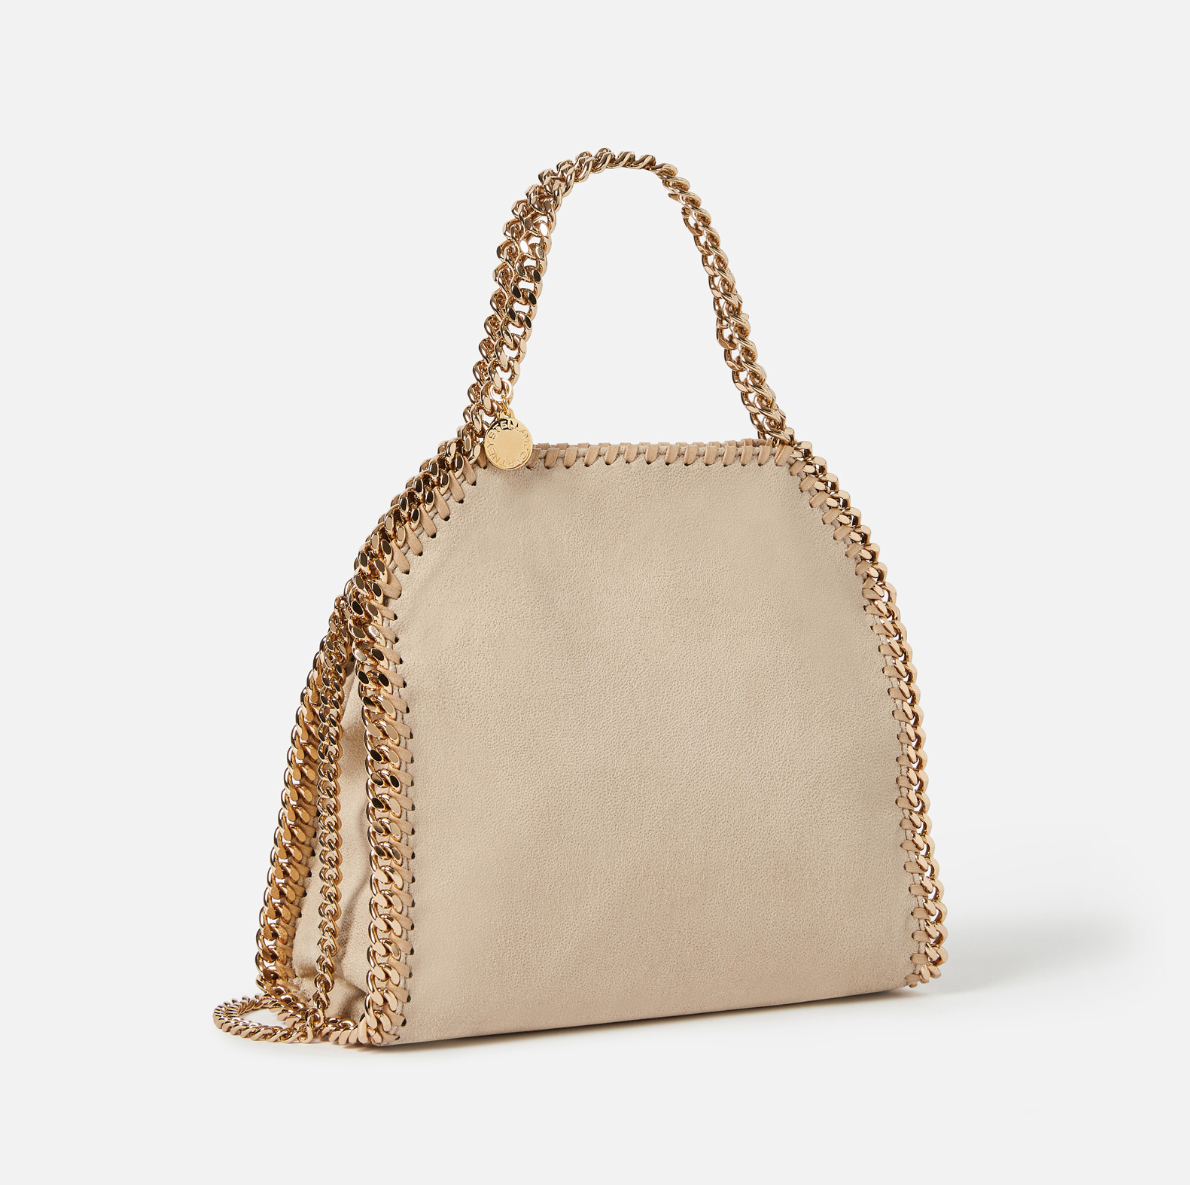 Vegan bags Stella McCartney